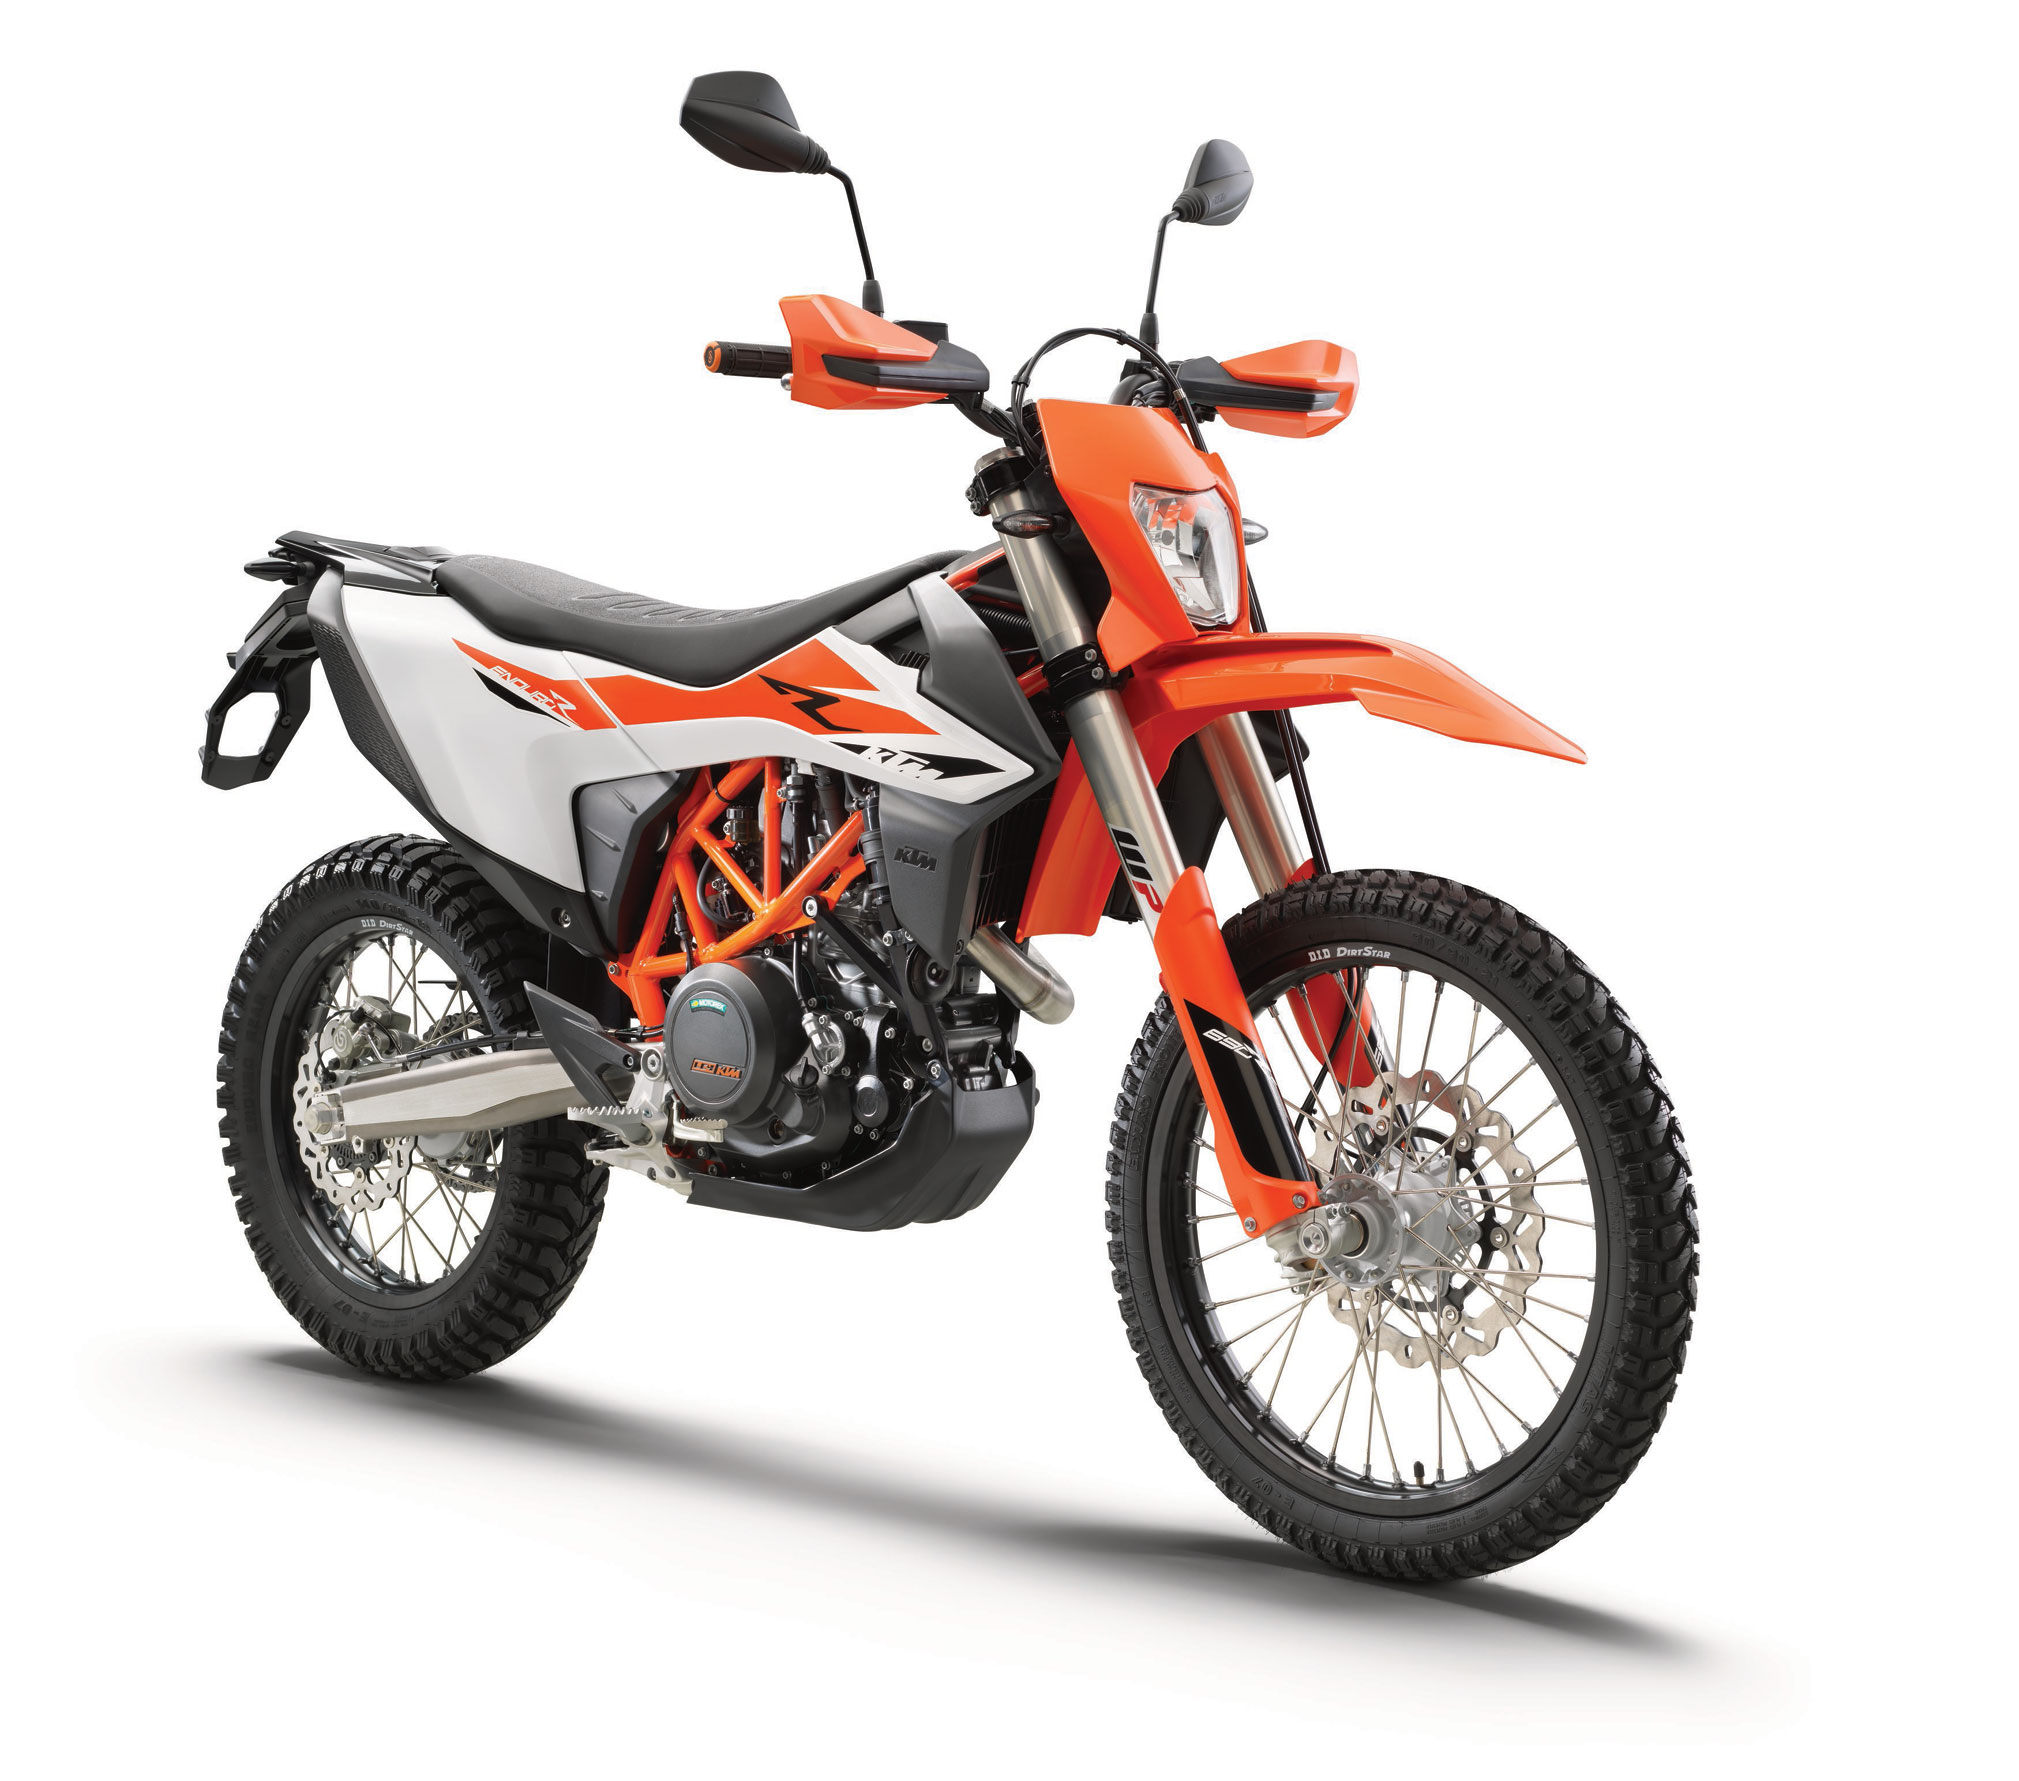 2019 Ktm 690 Enduro R Guide Total Motorcycle